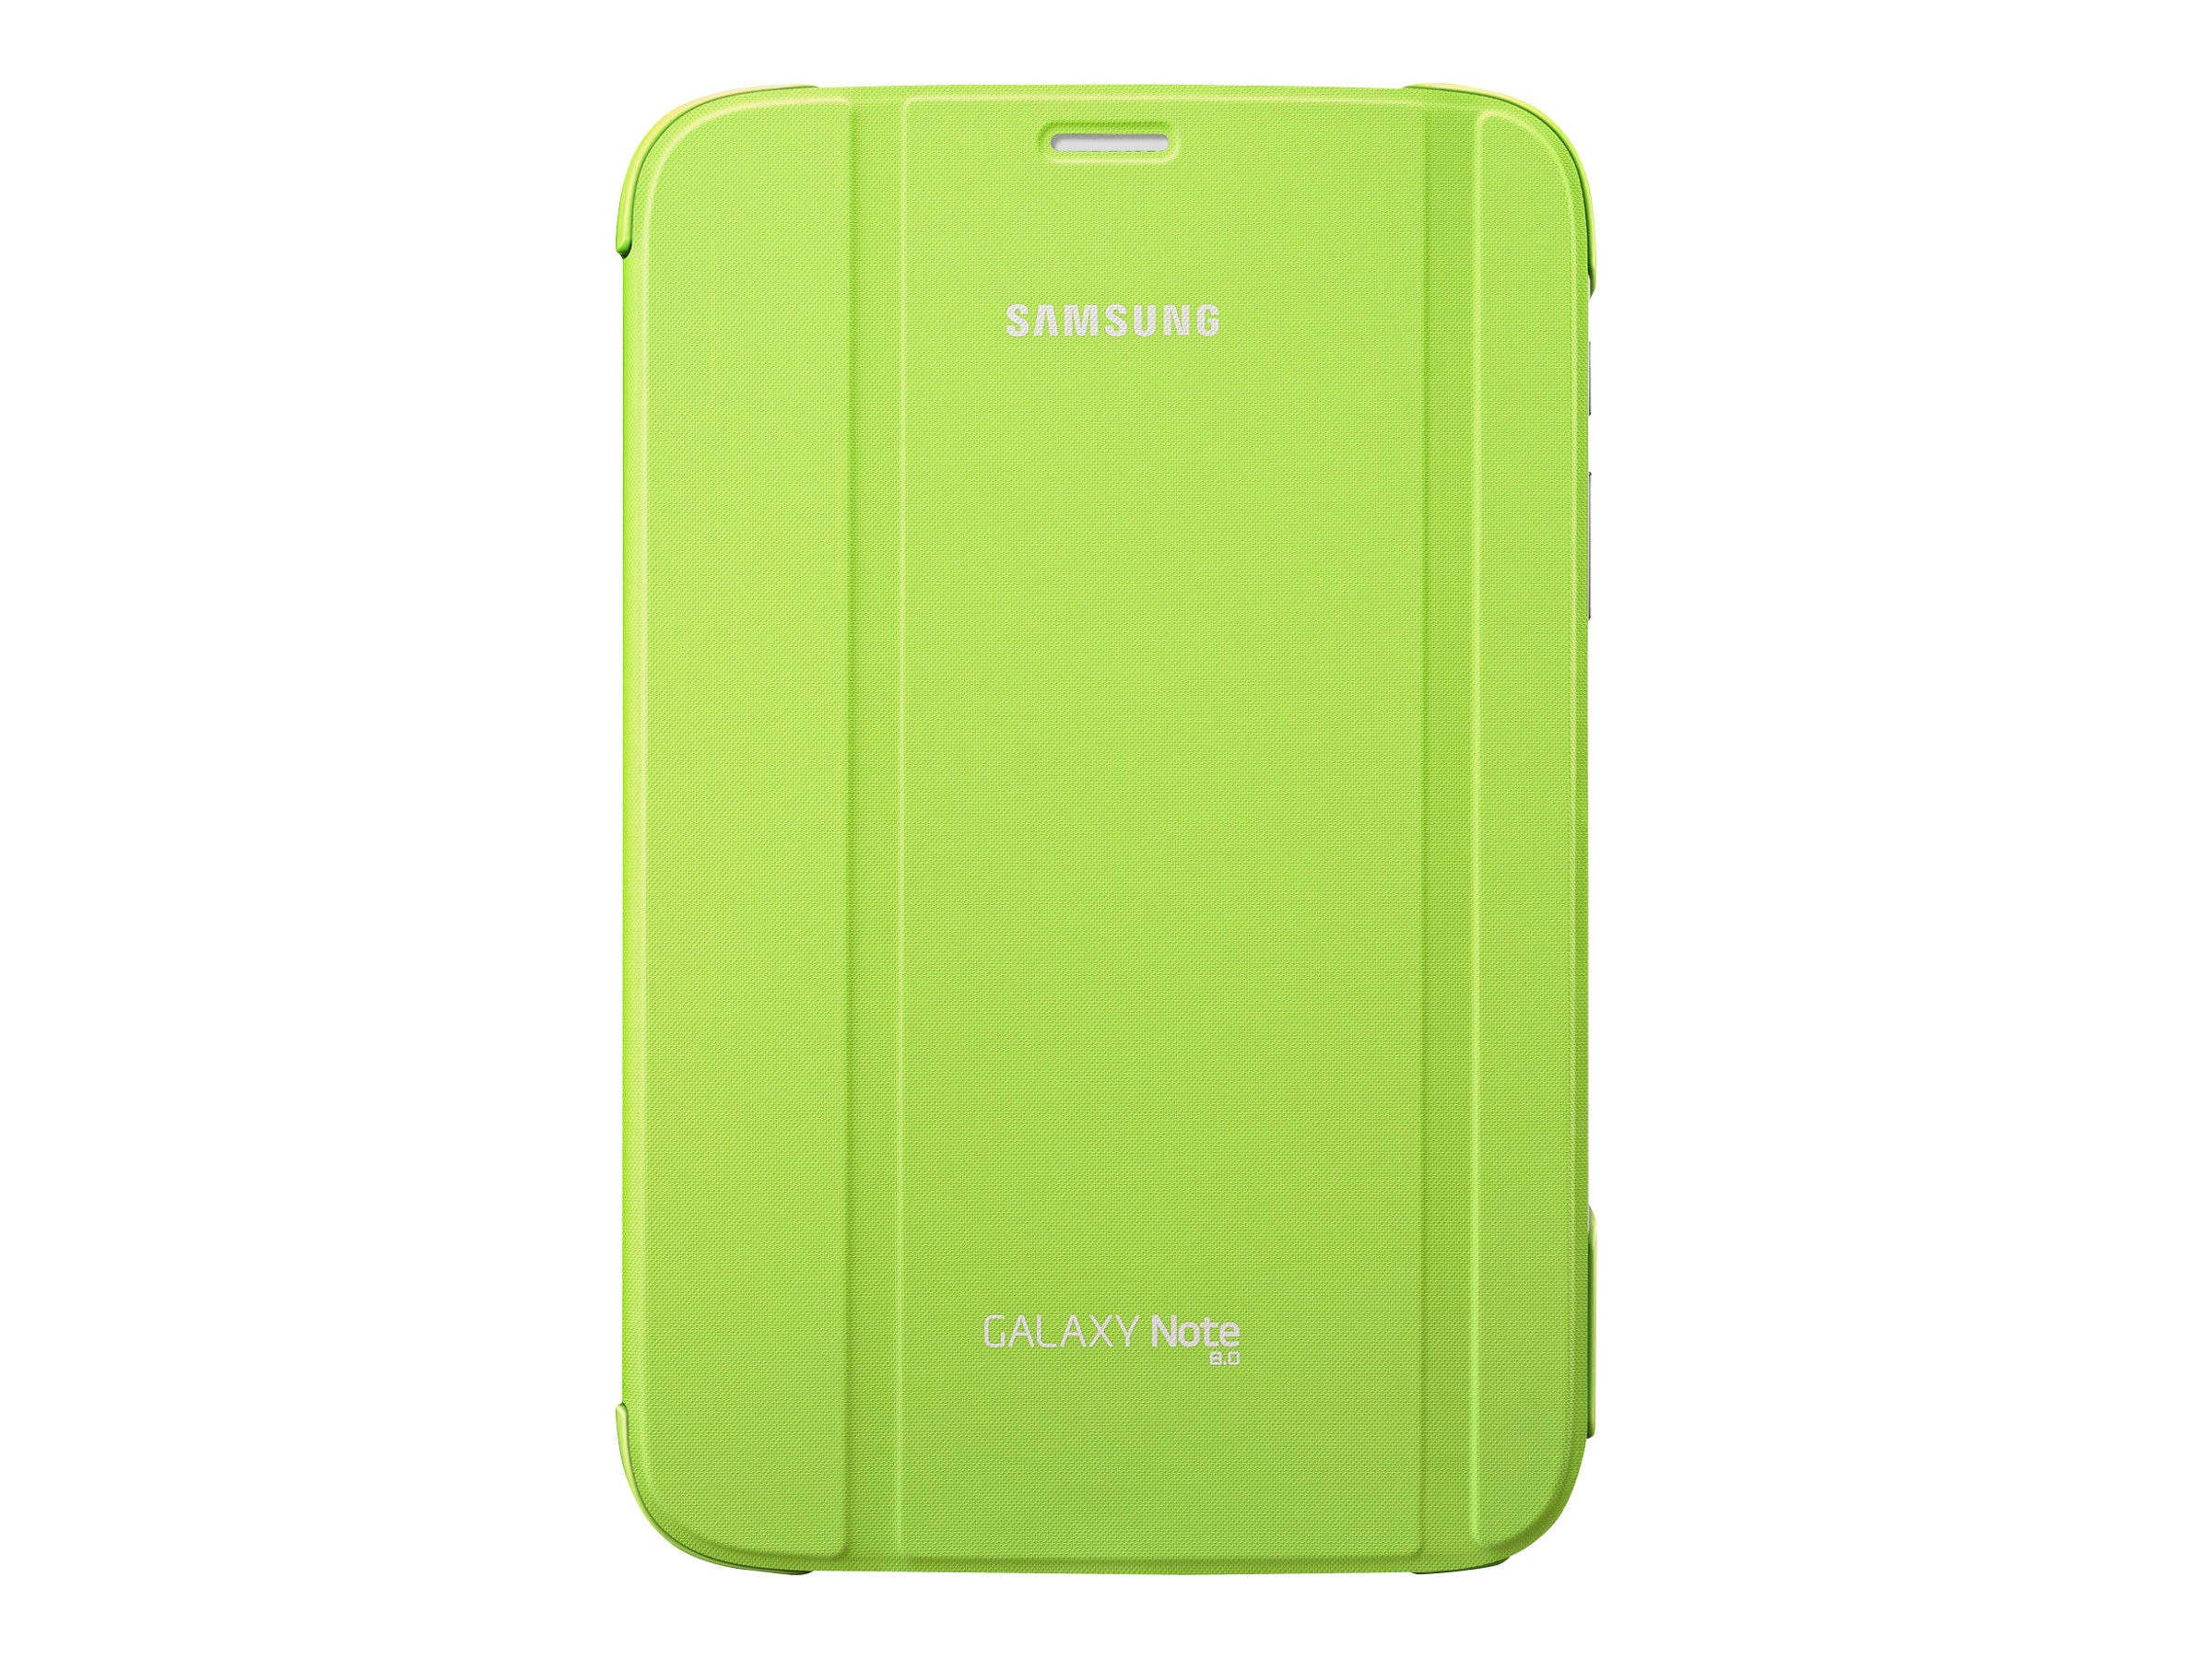 Samsung Book Cover for Galaxy Note 8.0, Green